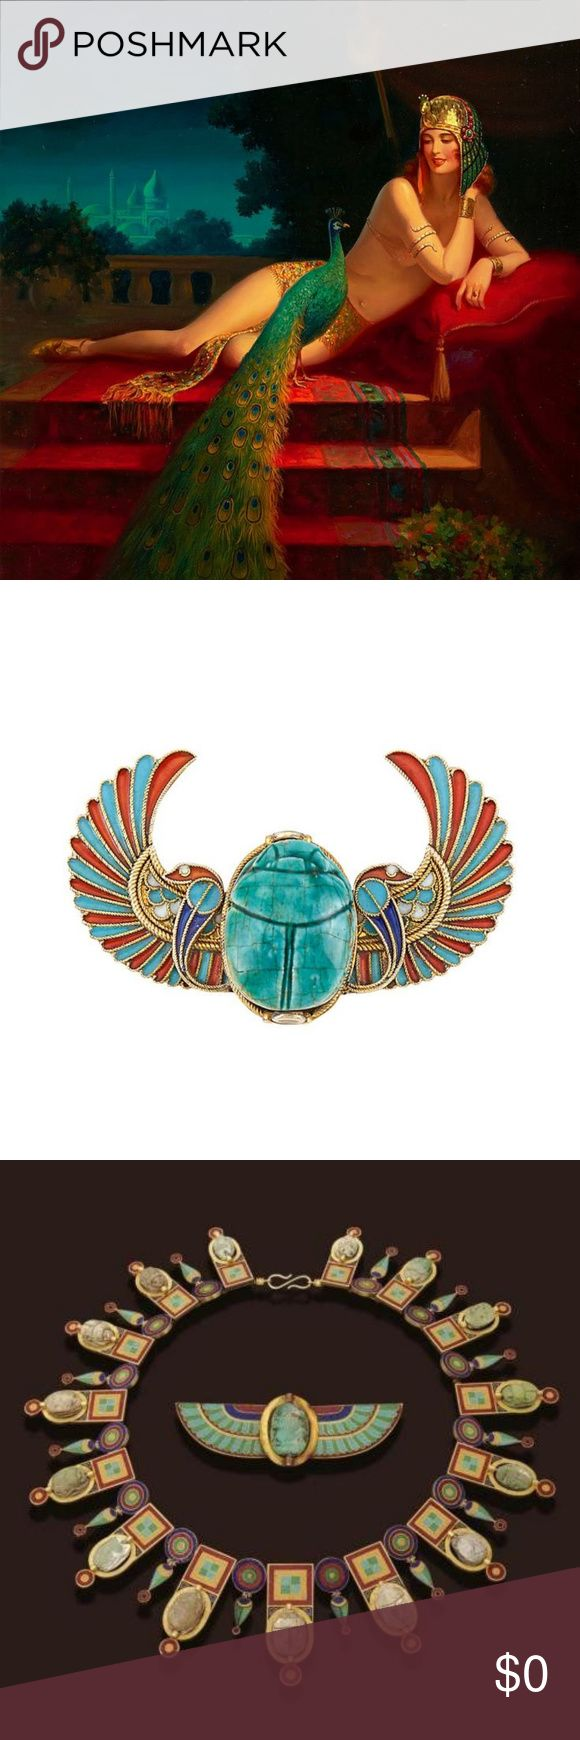 What is Egyptian Revival? The discovery of King Tuts tomb in 1922 led to an explosion in Egyptian motifs. Sometimes considered part of the Deco movement, it's influence can be found in architecture, furniture, art, fashion, jewelry and the movies.   This modern revival lasted into the 1960's.  The 1963 film Cleopatra, widely considered a flop,  brought the curtain down .  Other revivals occurred in the late 1700's and mid 1800's with similar results.   (Cleopatra - by Edward Mason Eggleston…